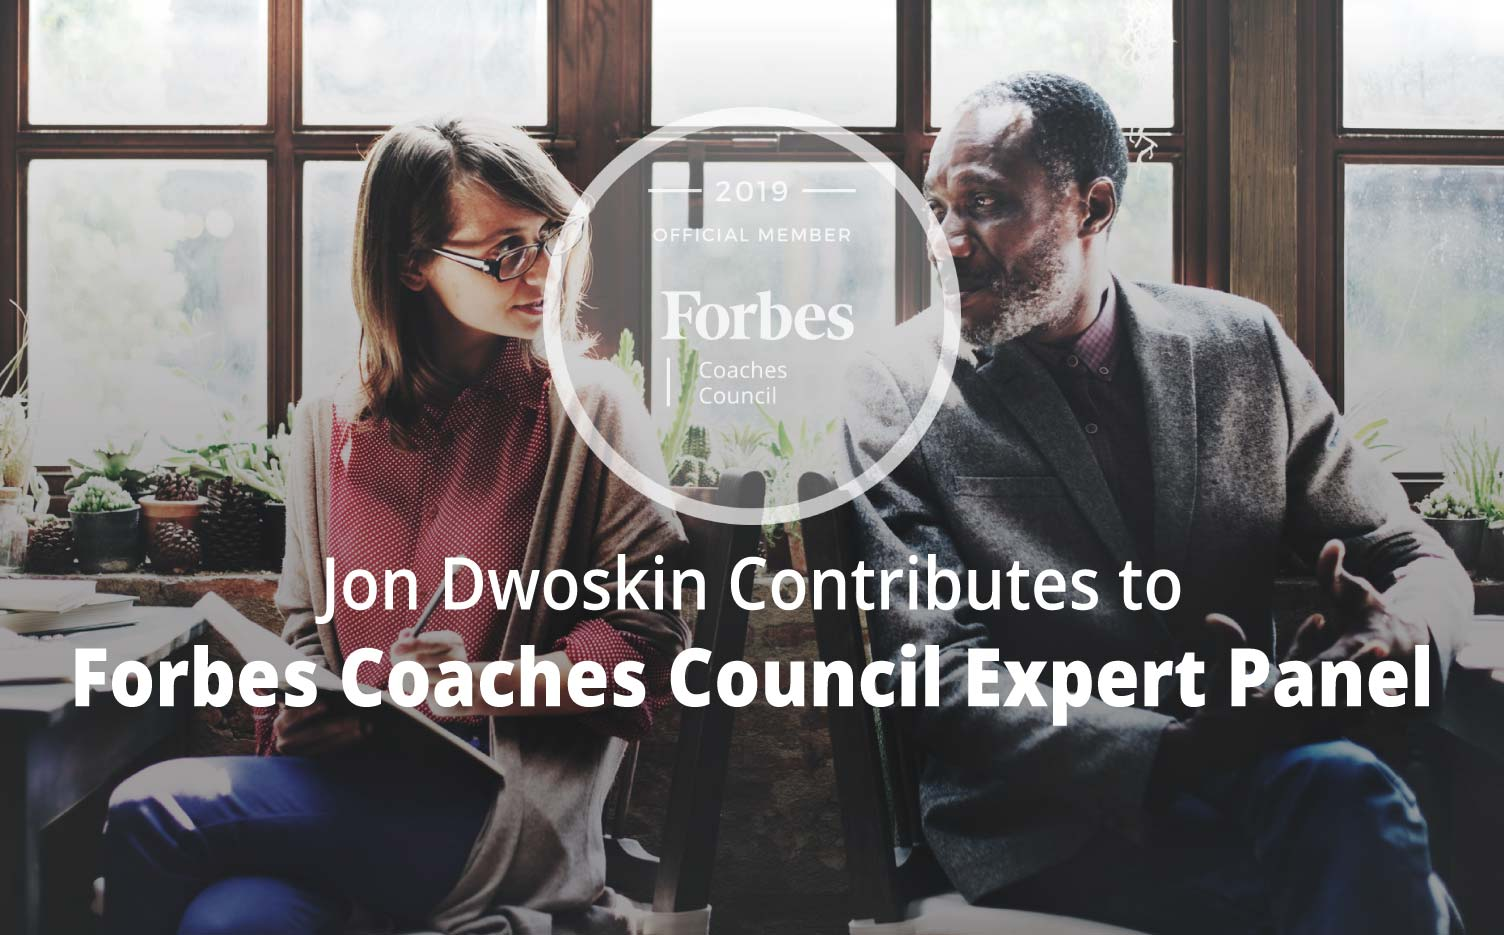 Jon Contributes to Forbes Coaches Council Expert Panel: 10 Vital Communication Skills Every Business Owner Should Possess - coworkers talking